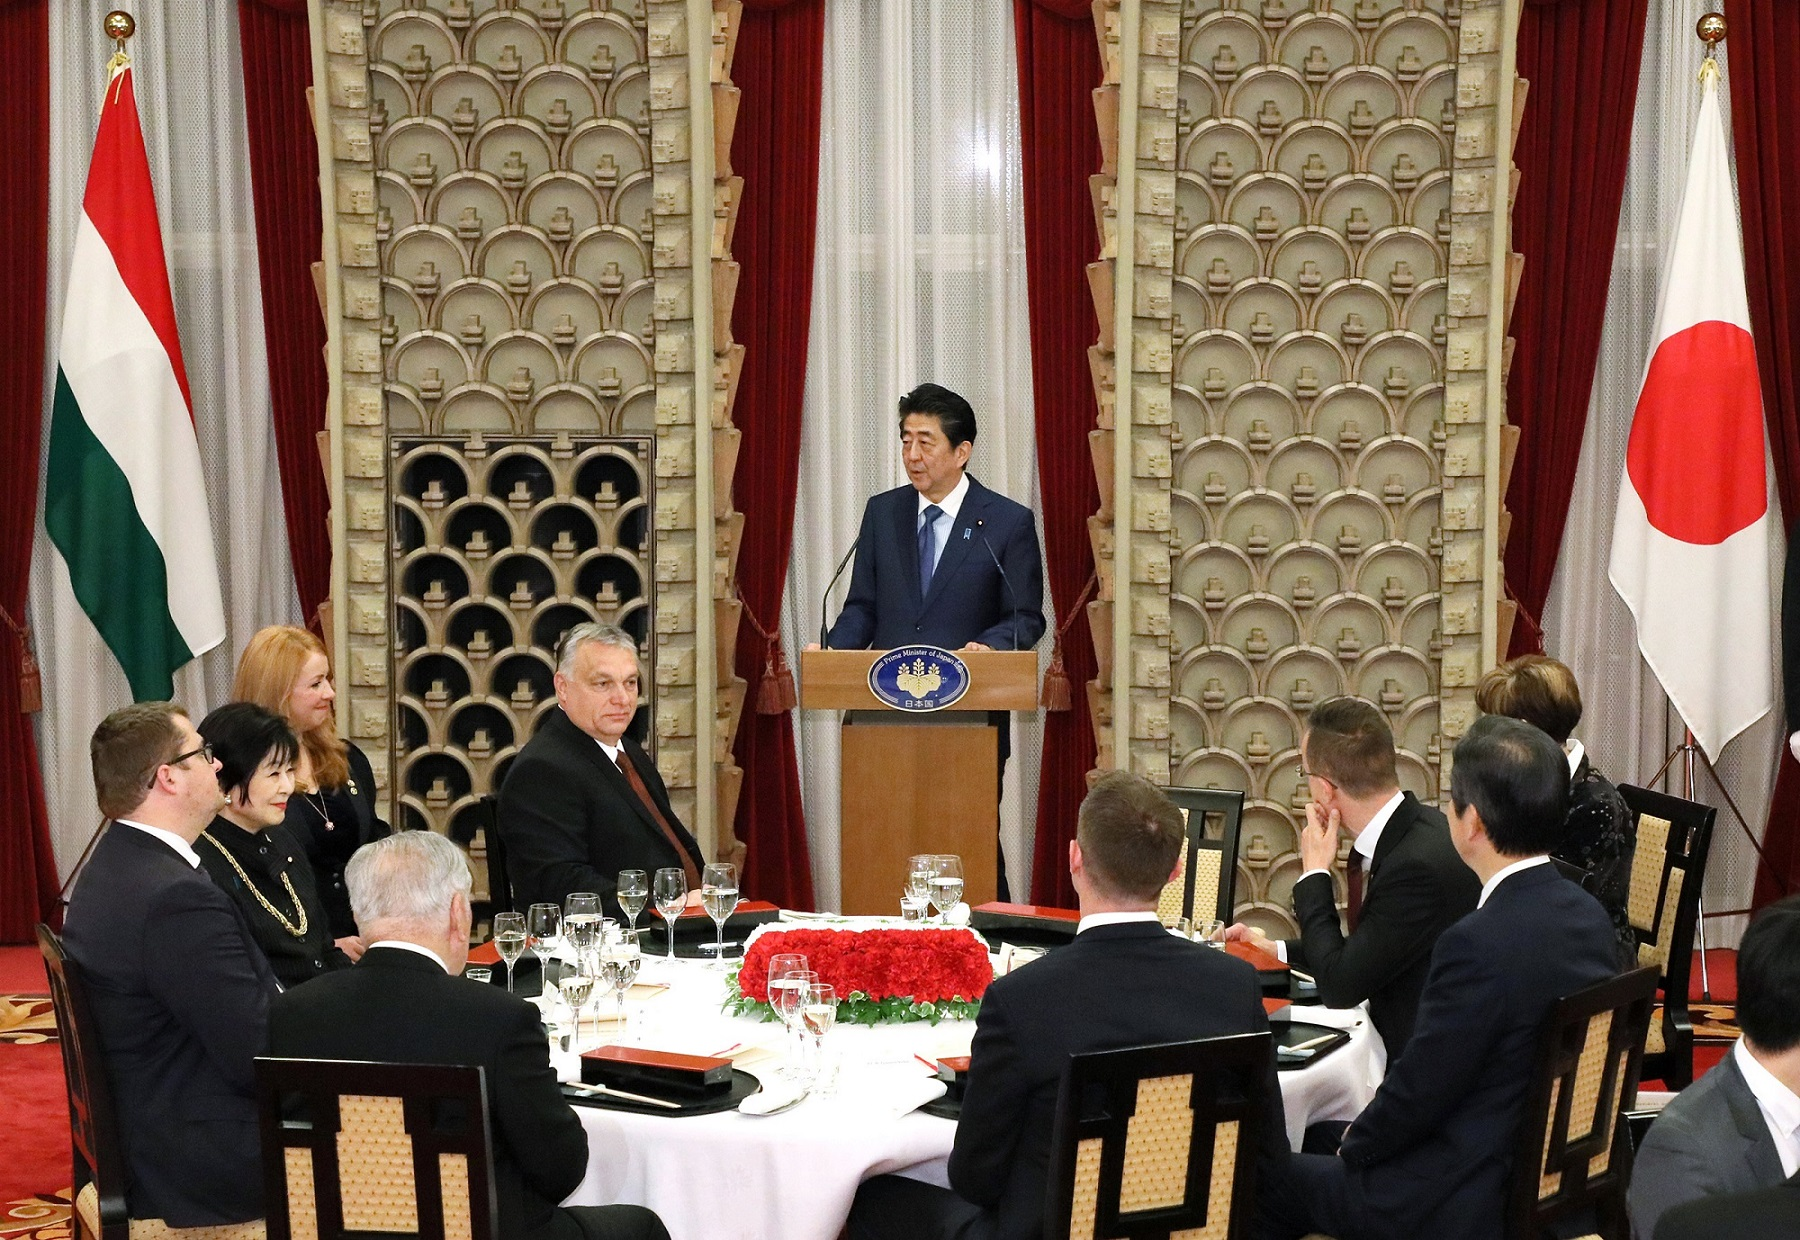 Photograph of the Prime Minister delivering an address at the banquet hosted by the Prime Minister (5)